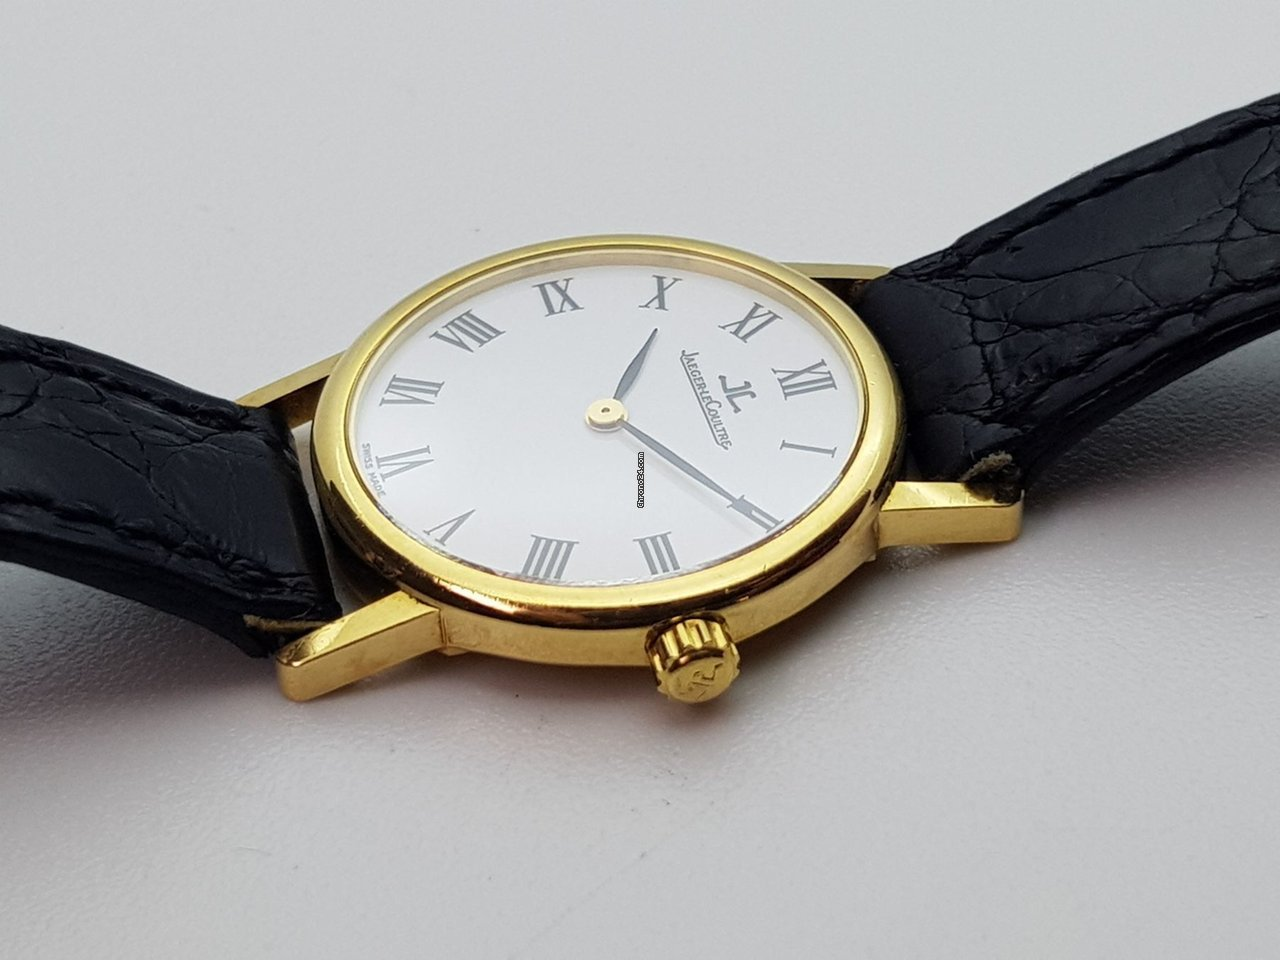 Jaeger-LeCoultre 131.1.09 1985 pre-owned